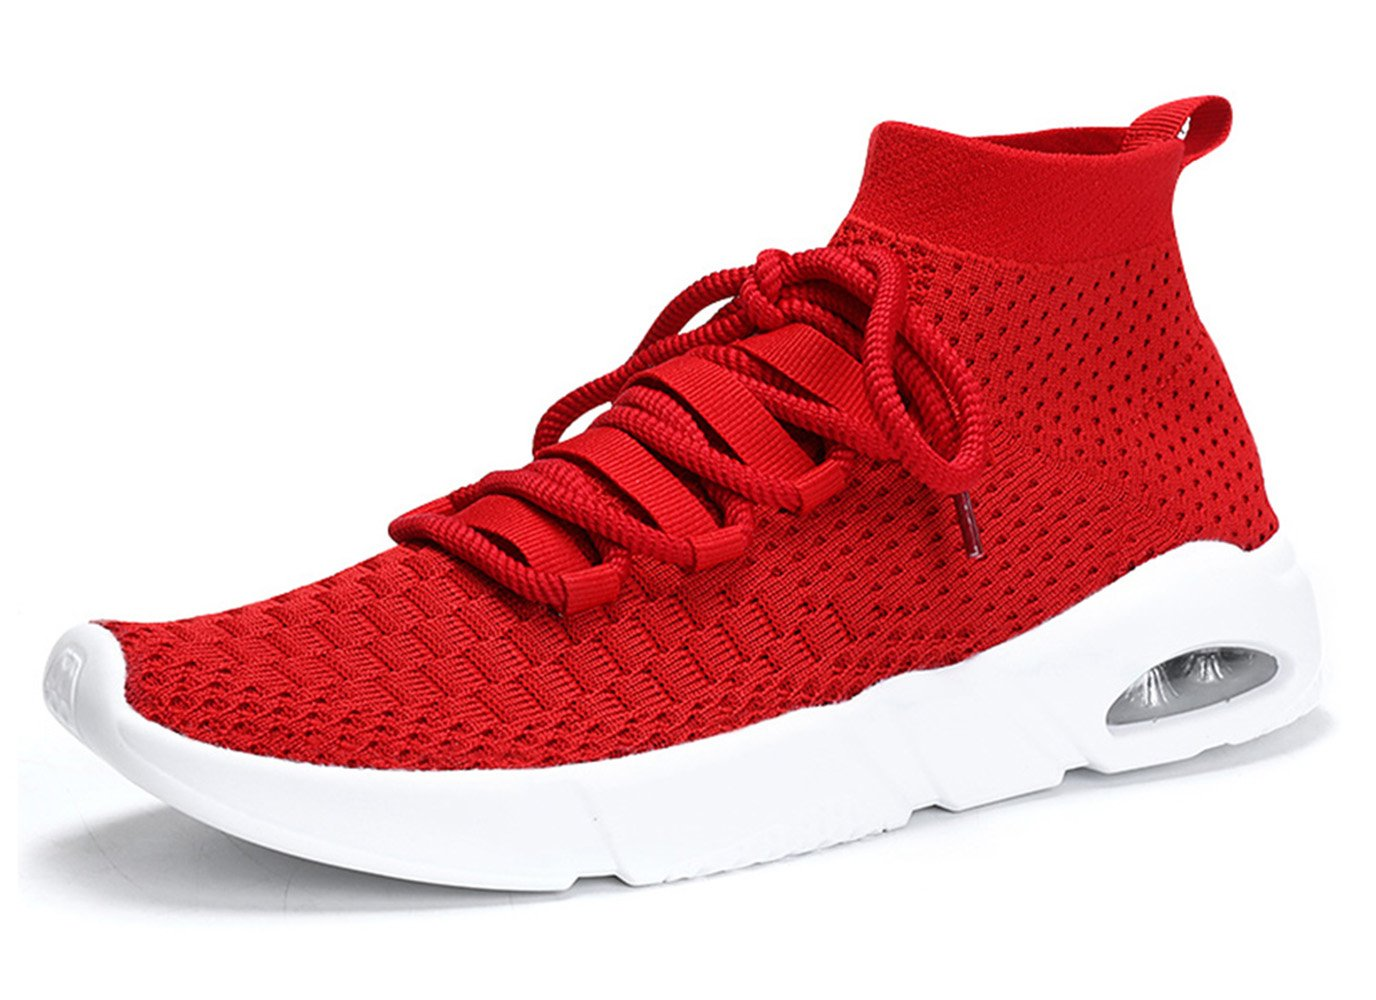 SKDOIUL Sneakers for Men mesh Breathable Lightweight Comfortable Sock Walking Shoes Gym Trail Workout Sport Running Shoes Youth Big Boys Tennis Jogging Shoes Plus Size Red Size 6.5 (1806-Red-39)